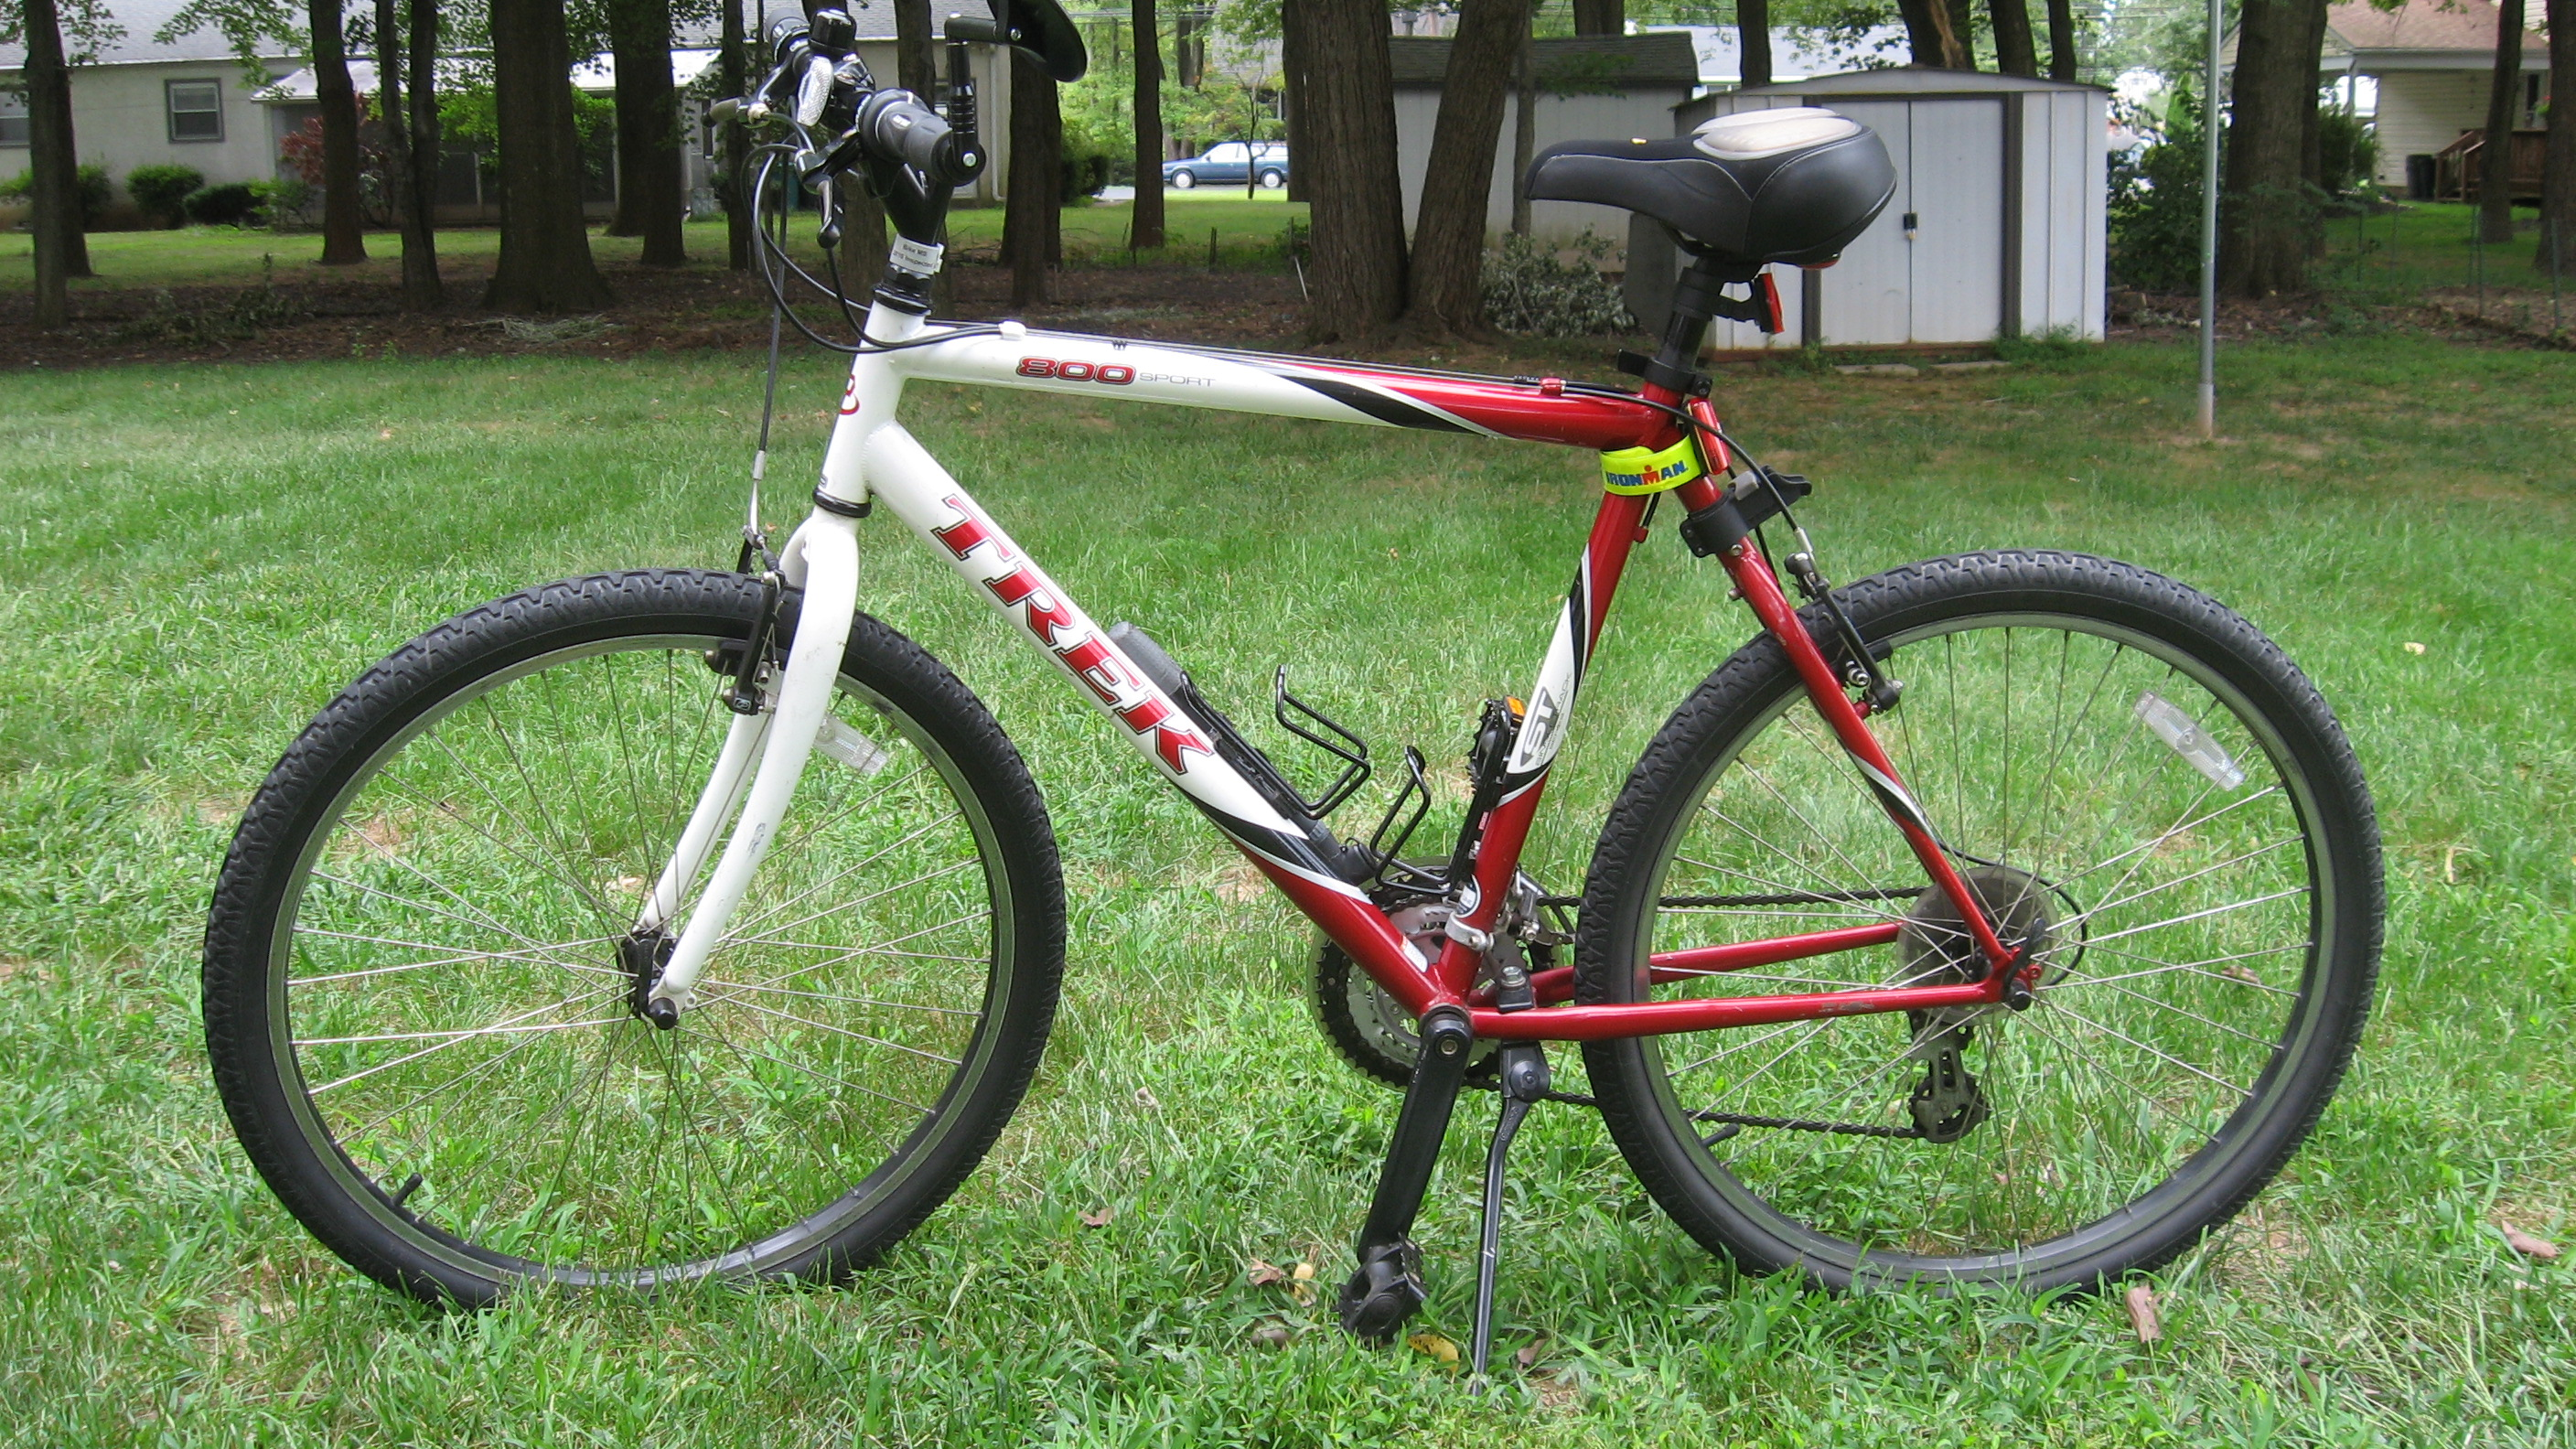 File:2002 Trek 800 Sport JPG - Wikimedia Commons